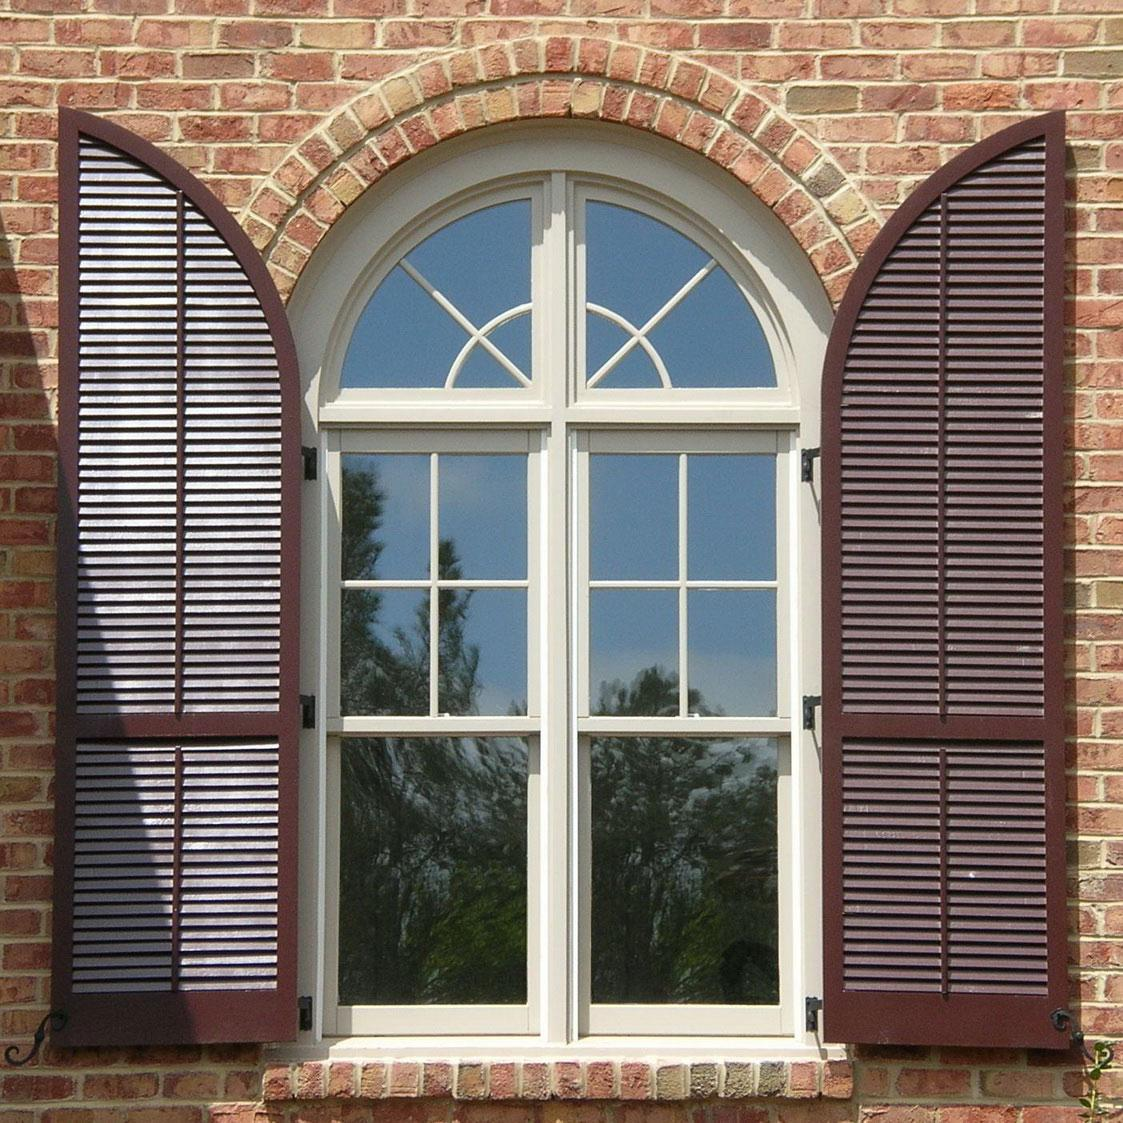 Vinyl Arched Window : Stylish window shutters for treatment ideas